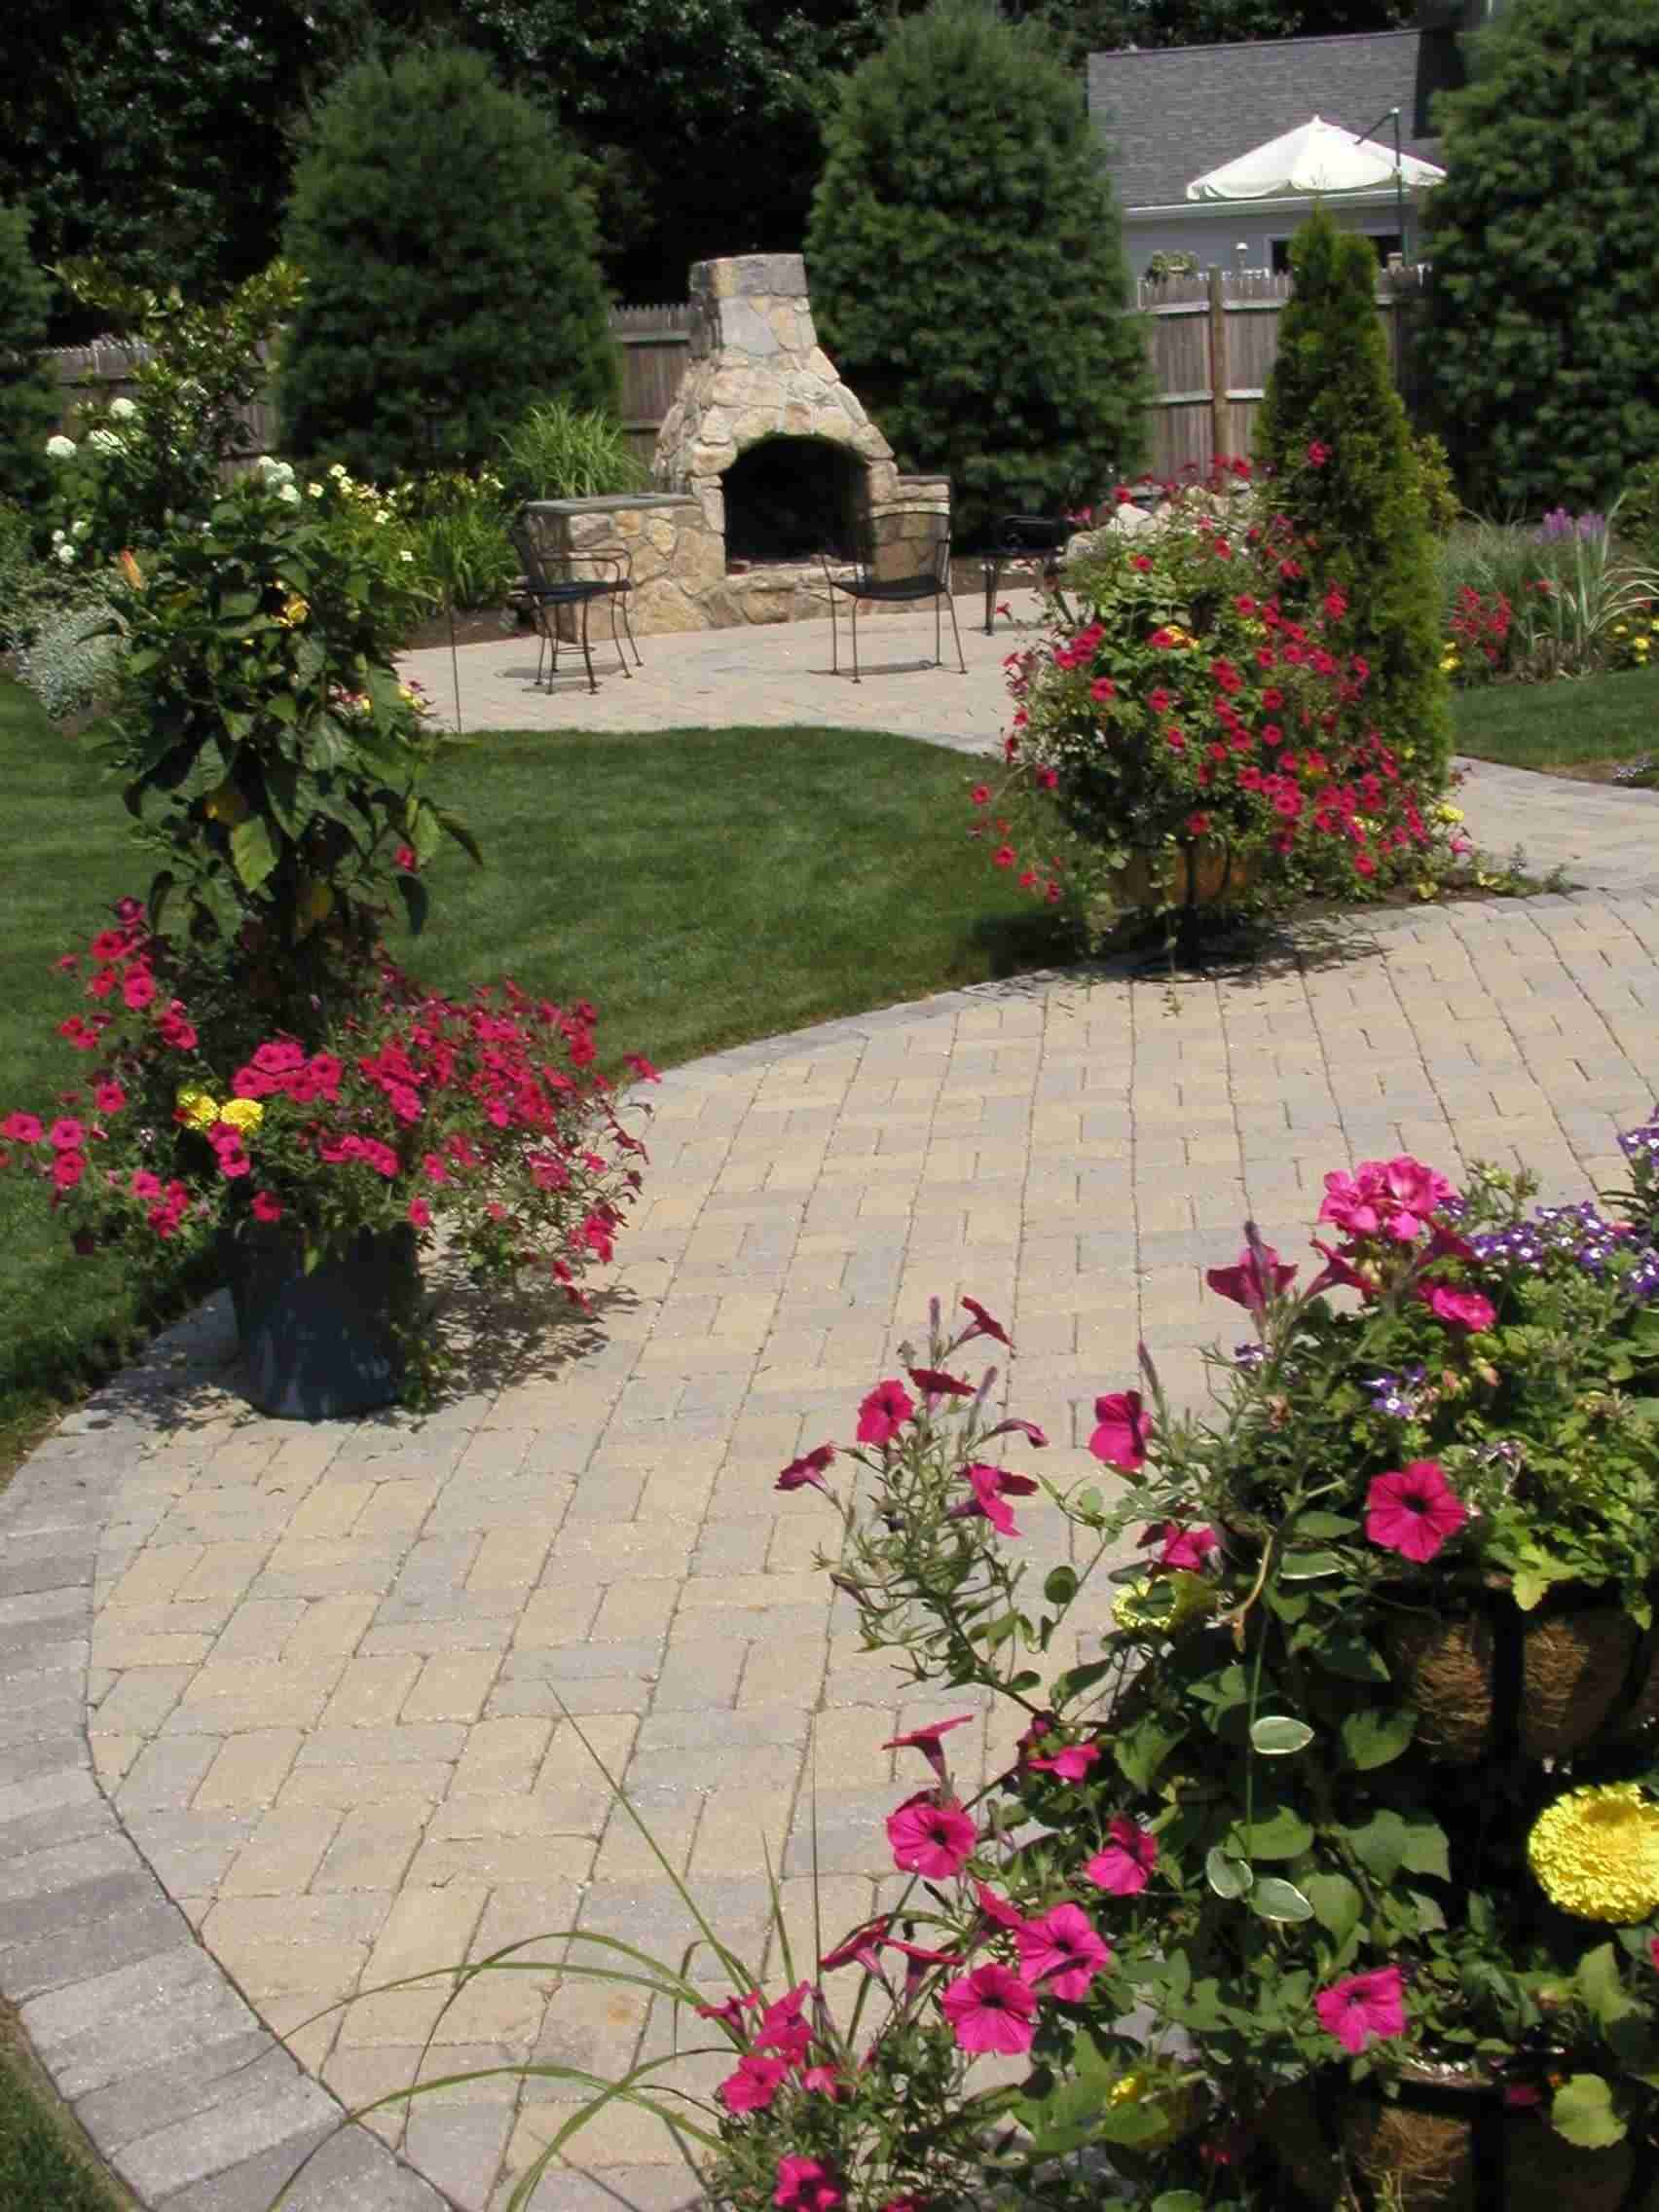 Landscaping Backyard Backyard landscaping ideas-some ... on Backyard Landscaping Ideas With Trees id=45076